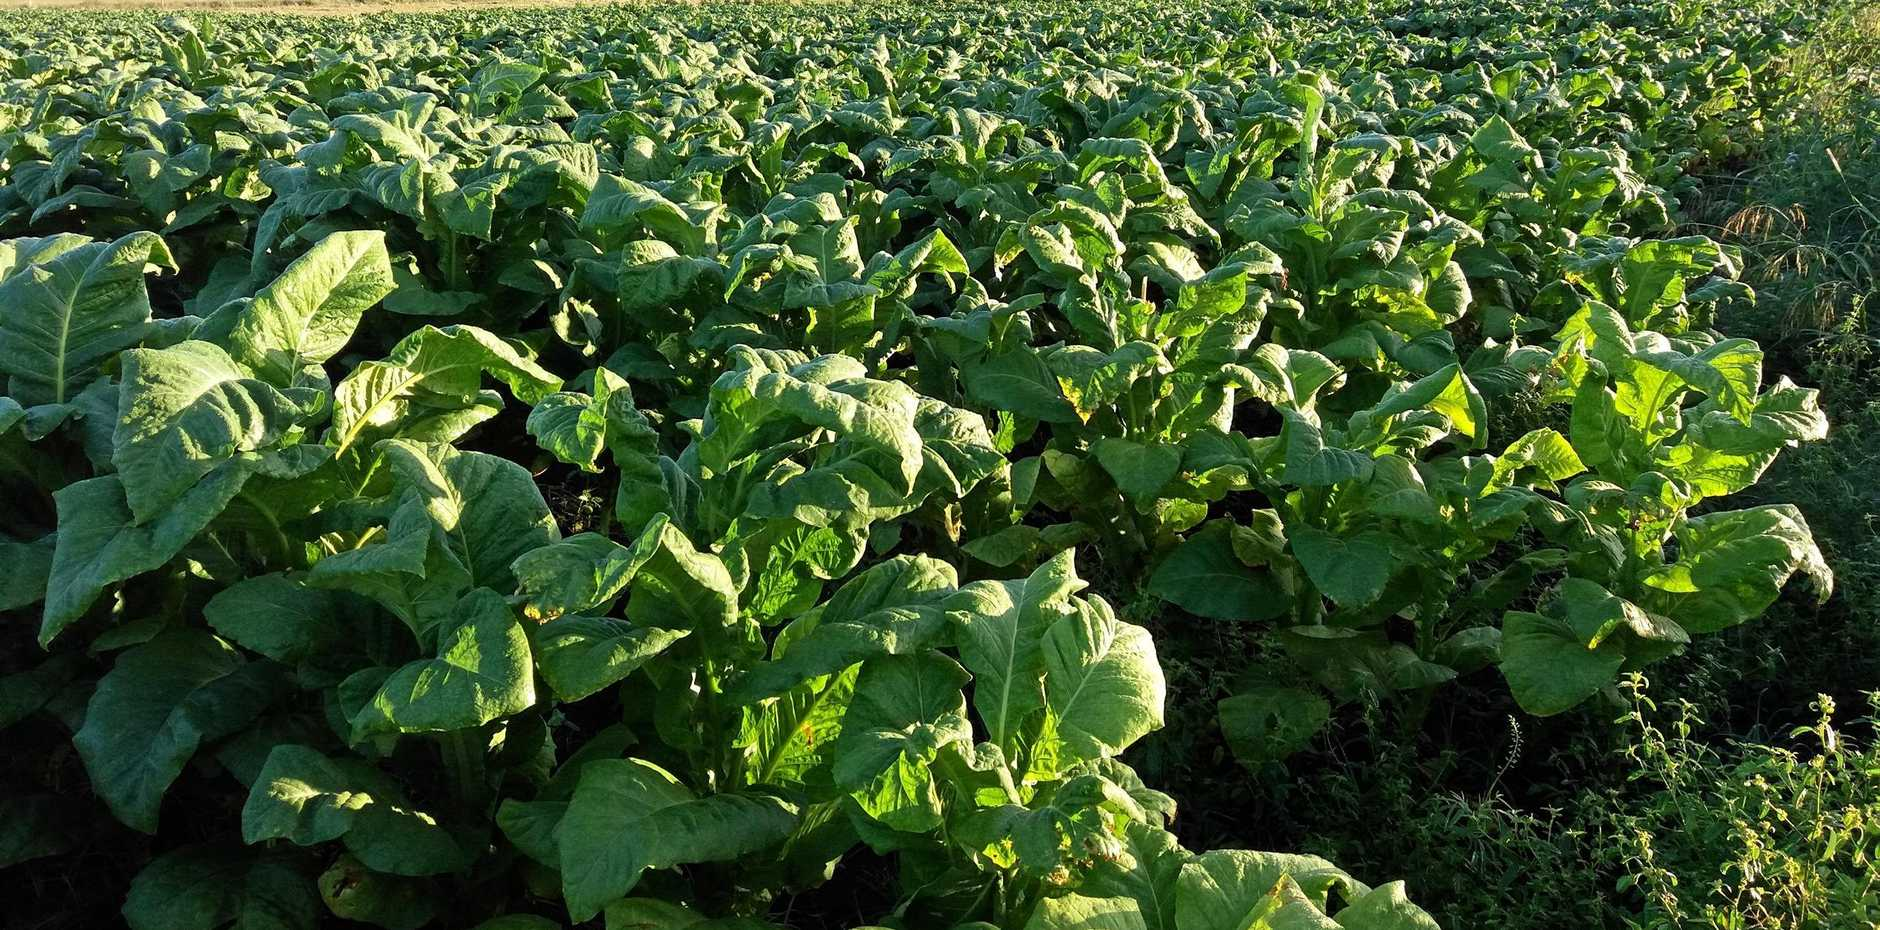 UPDATE: New details have been revealed almost a year after Australian Taxation Office and Queensland Police Service officers found 21.6 hectares of illegal tobacco growing in the Bundaberg region.